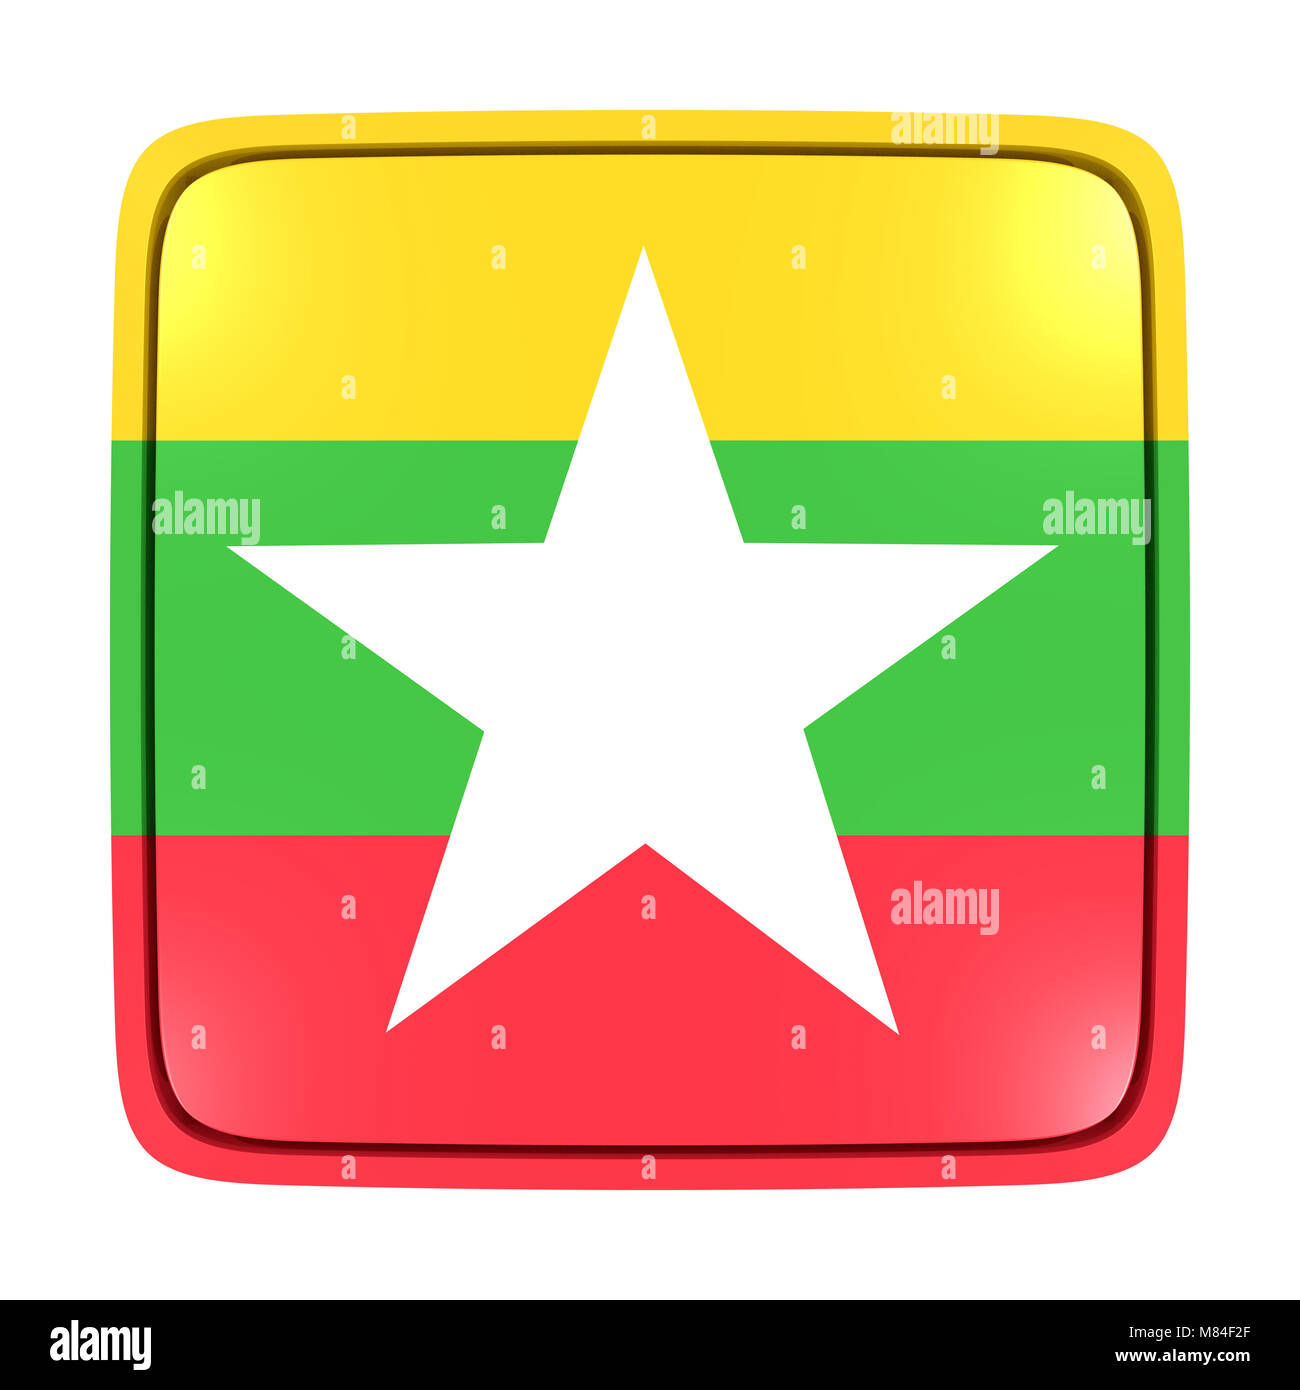 3d rendering of a Myanmar flag icon. Isolated on white background. - Stock Image